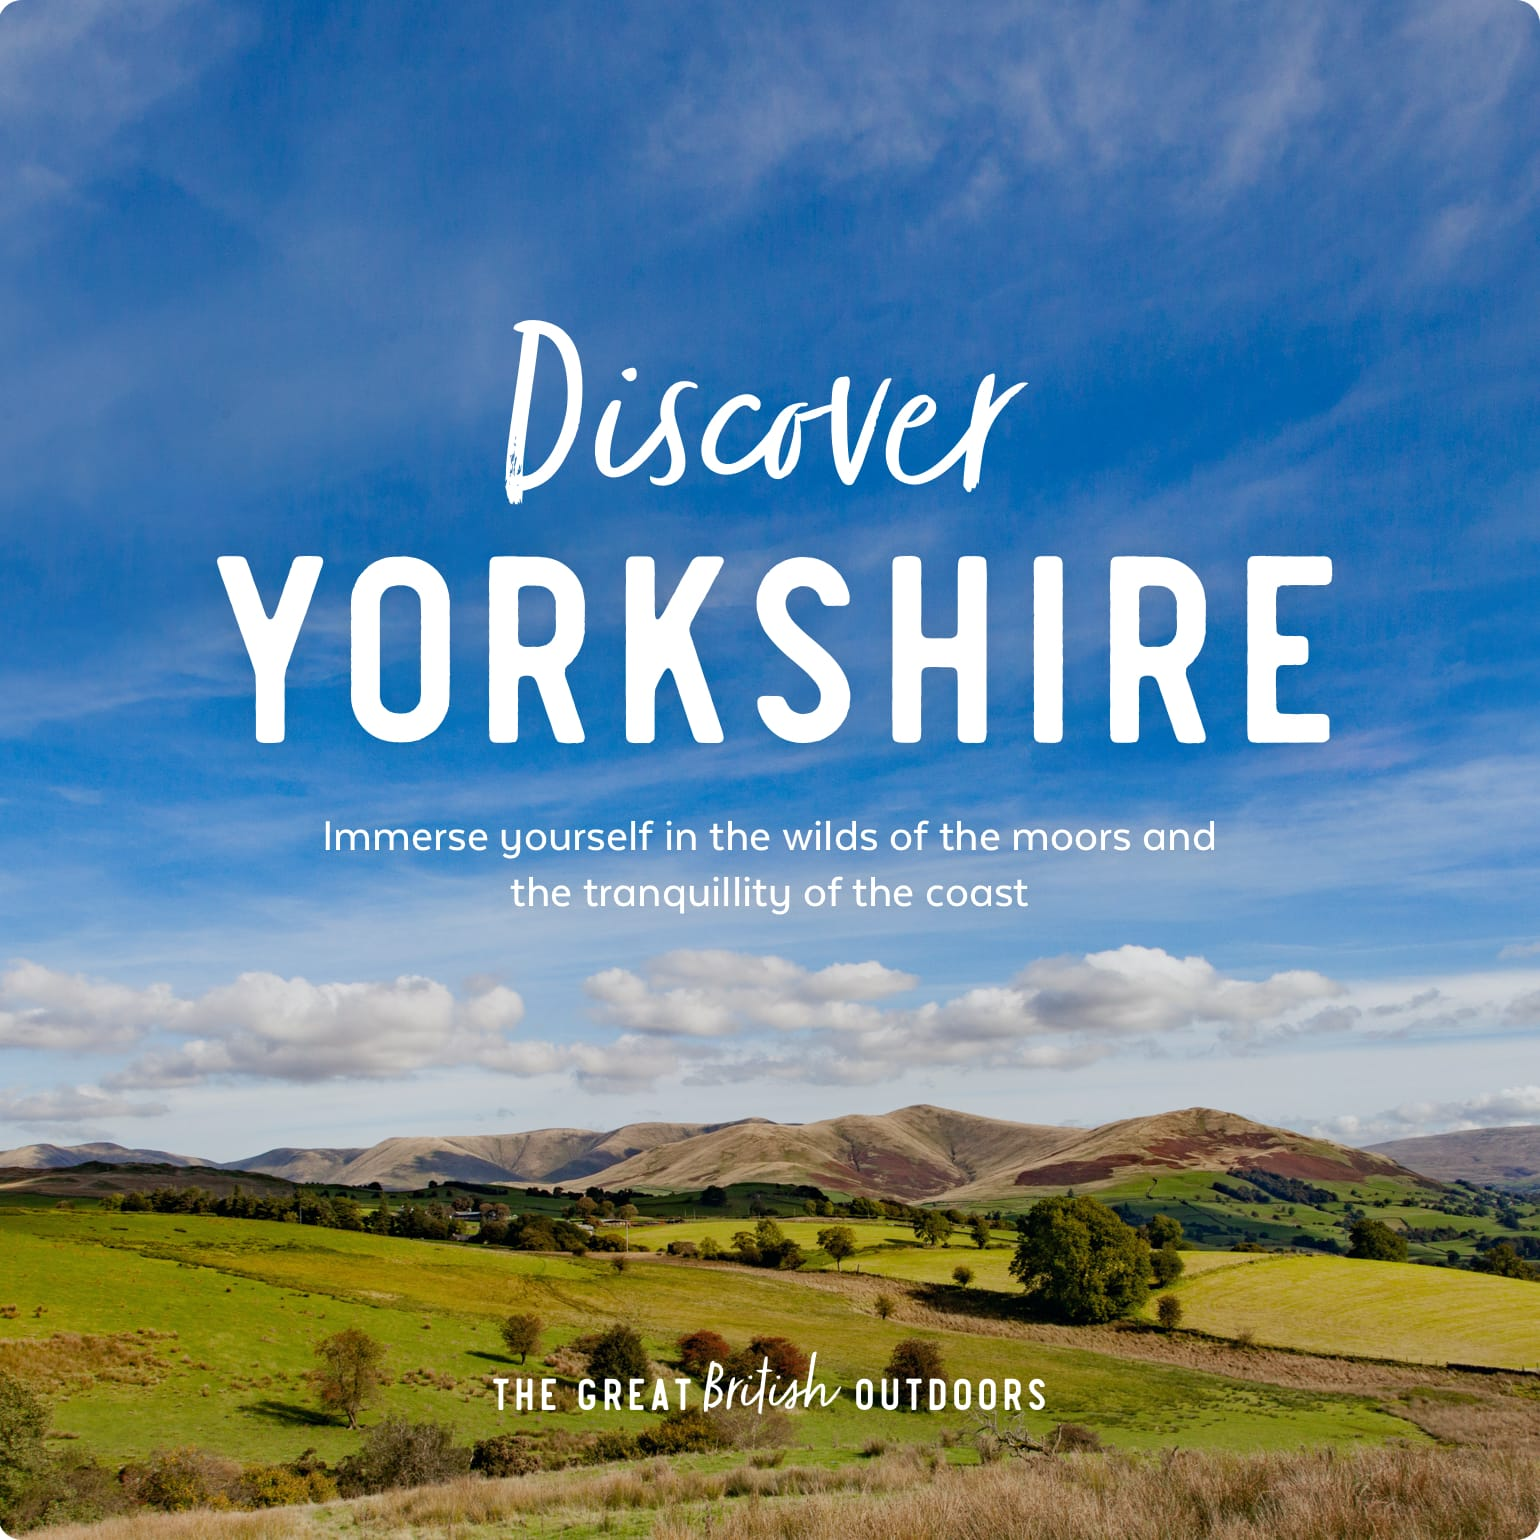 Discover Yorkshire